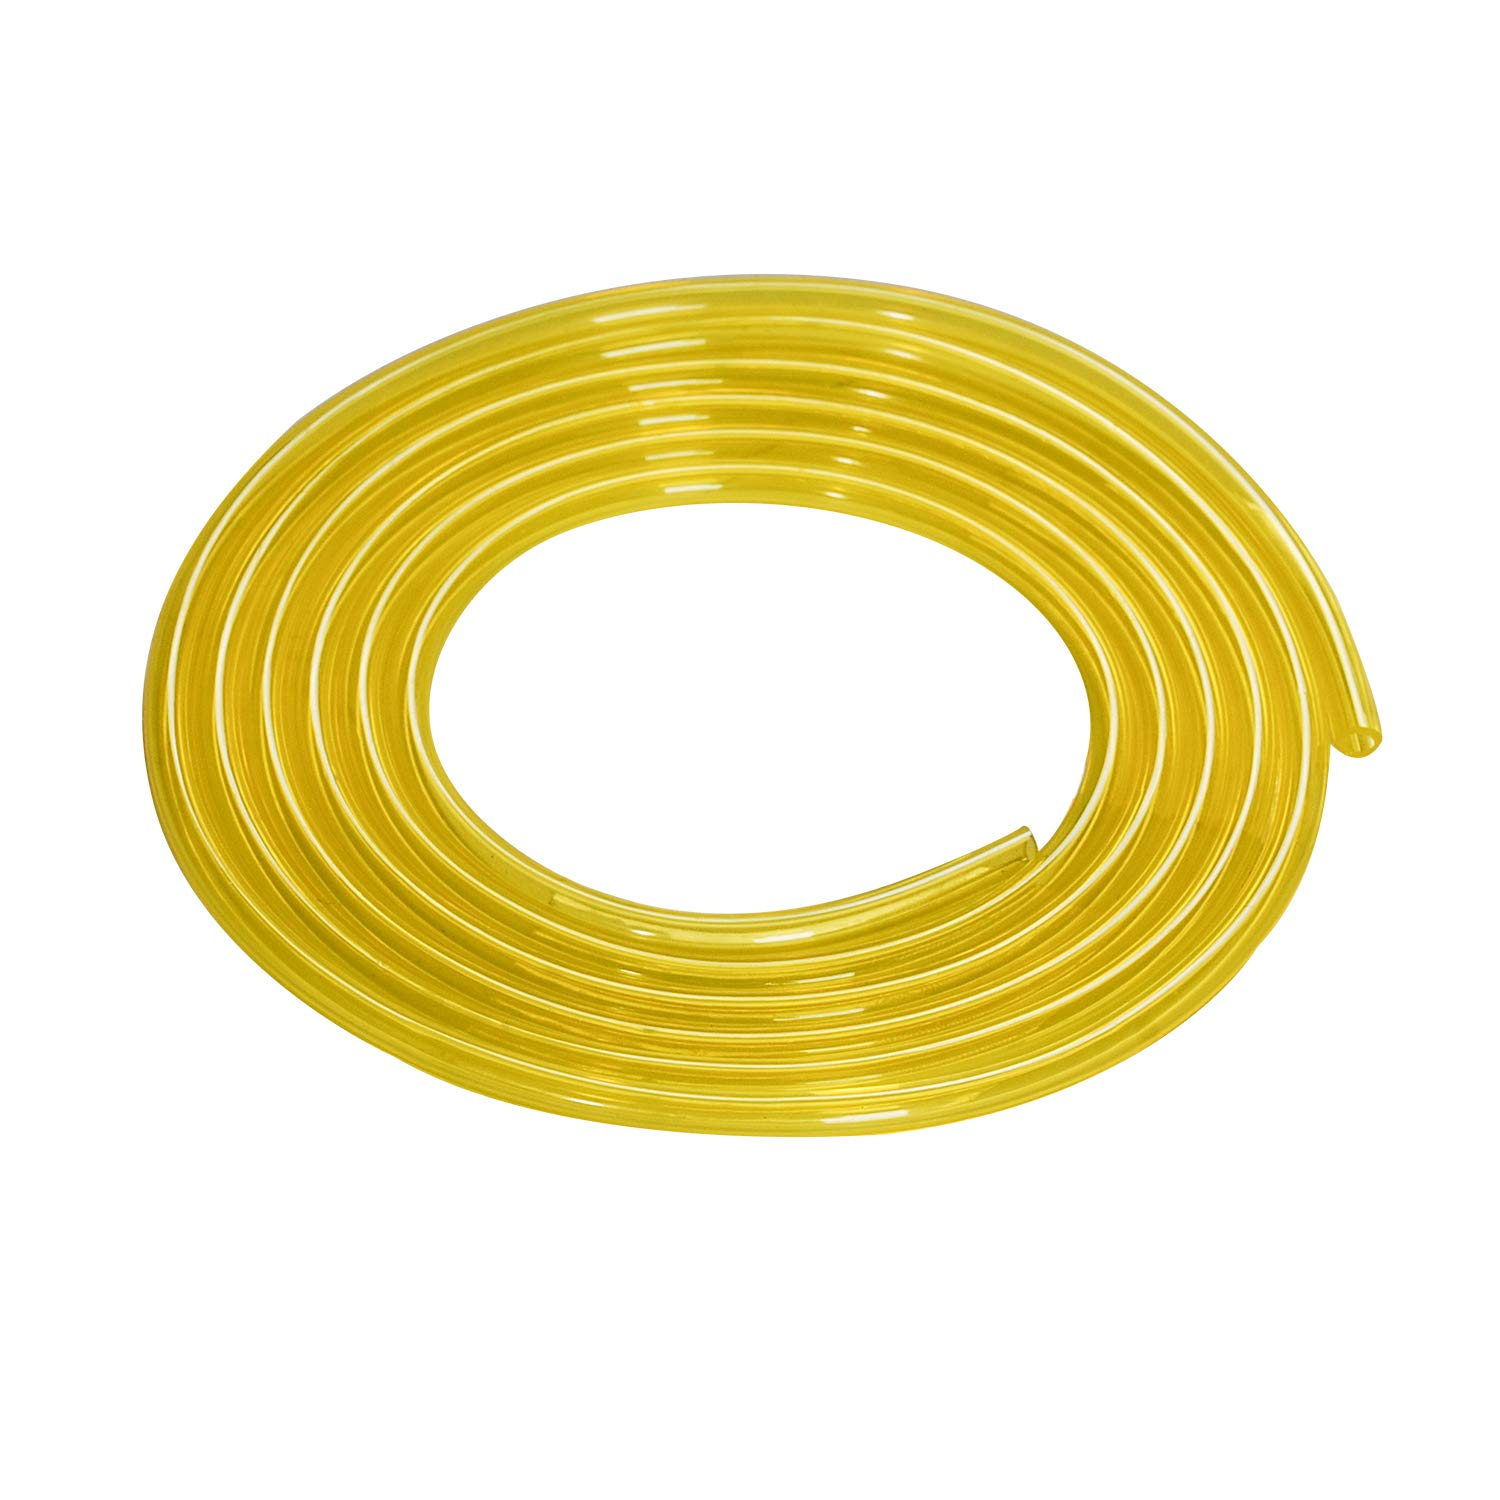 x O.D 4 Size HIFROM Replace 4-Feet Fuel Line Hose Tube I.D 3/32 x ...